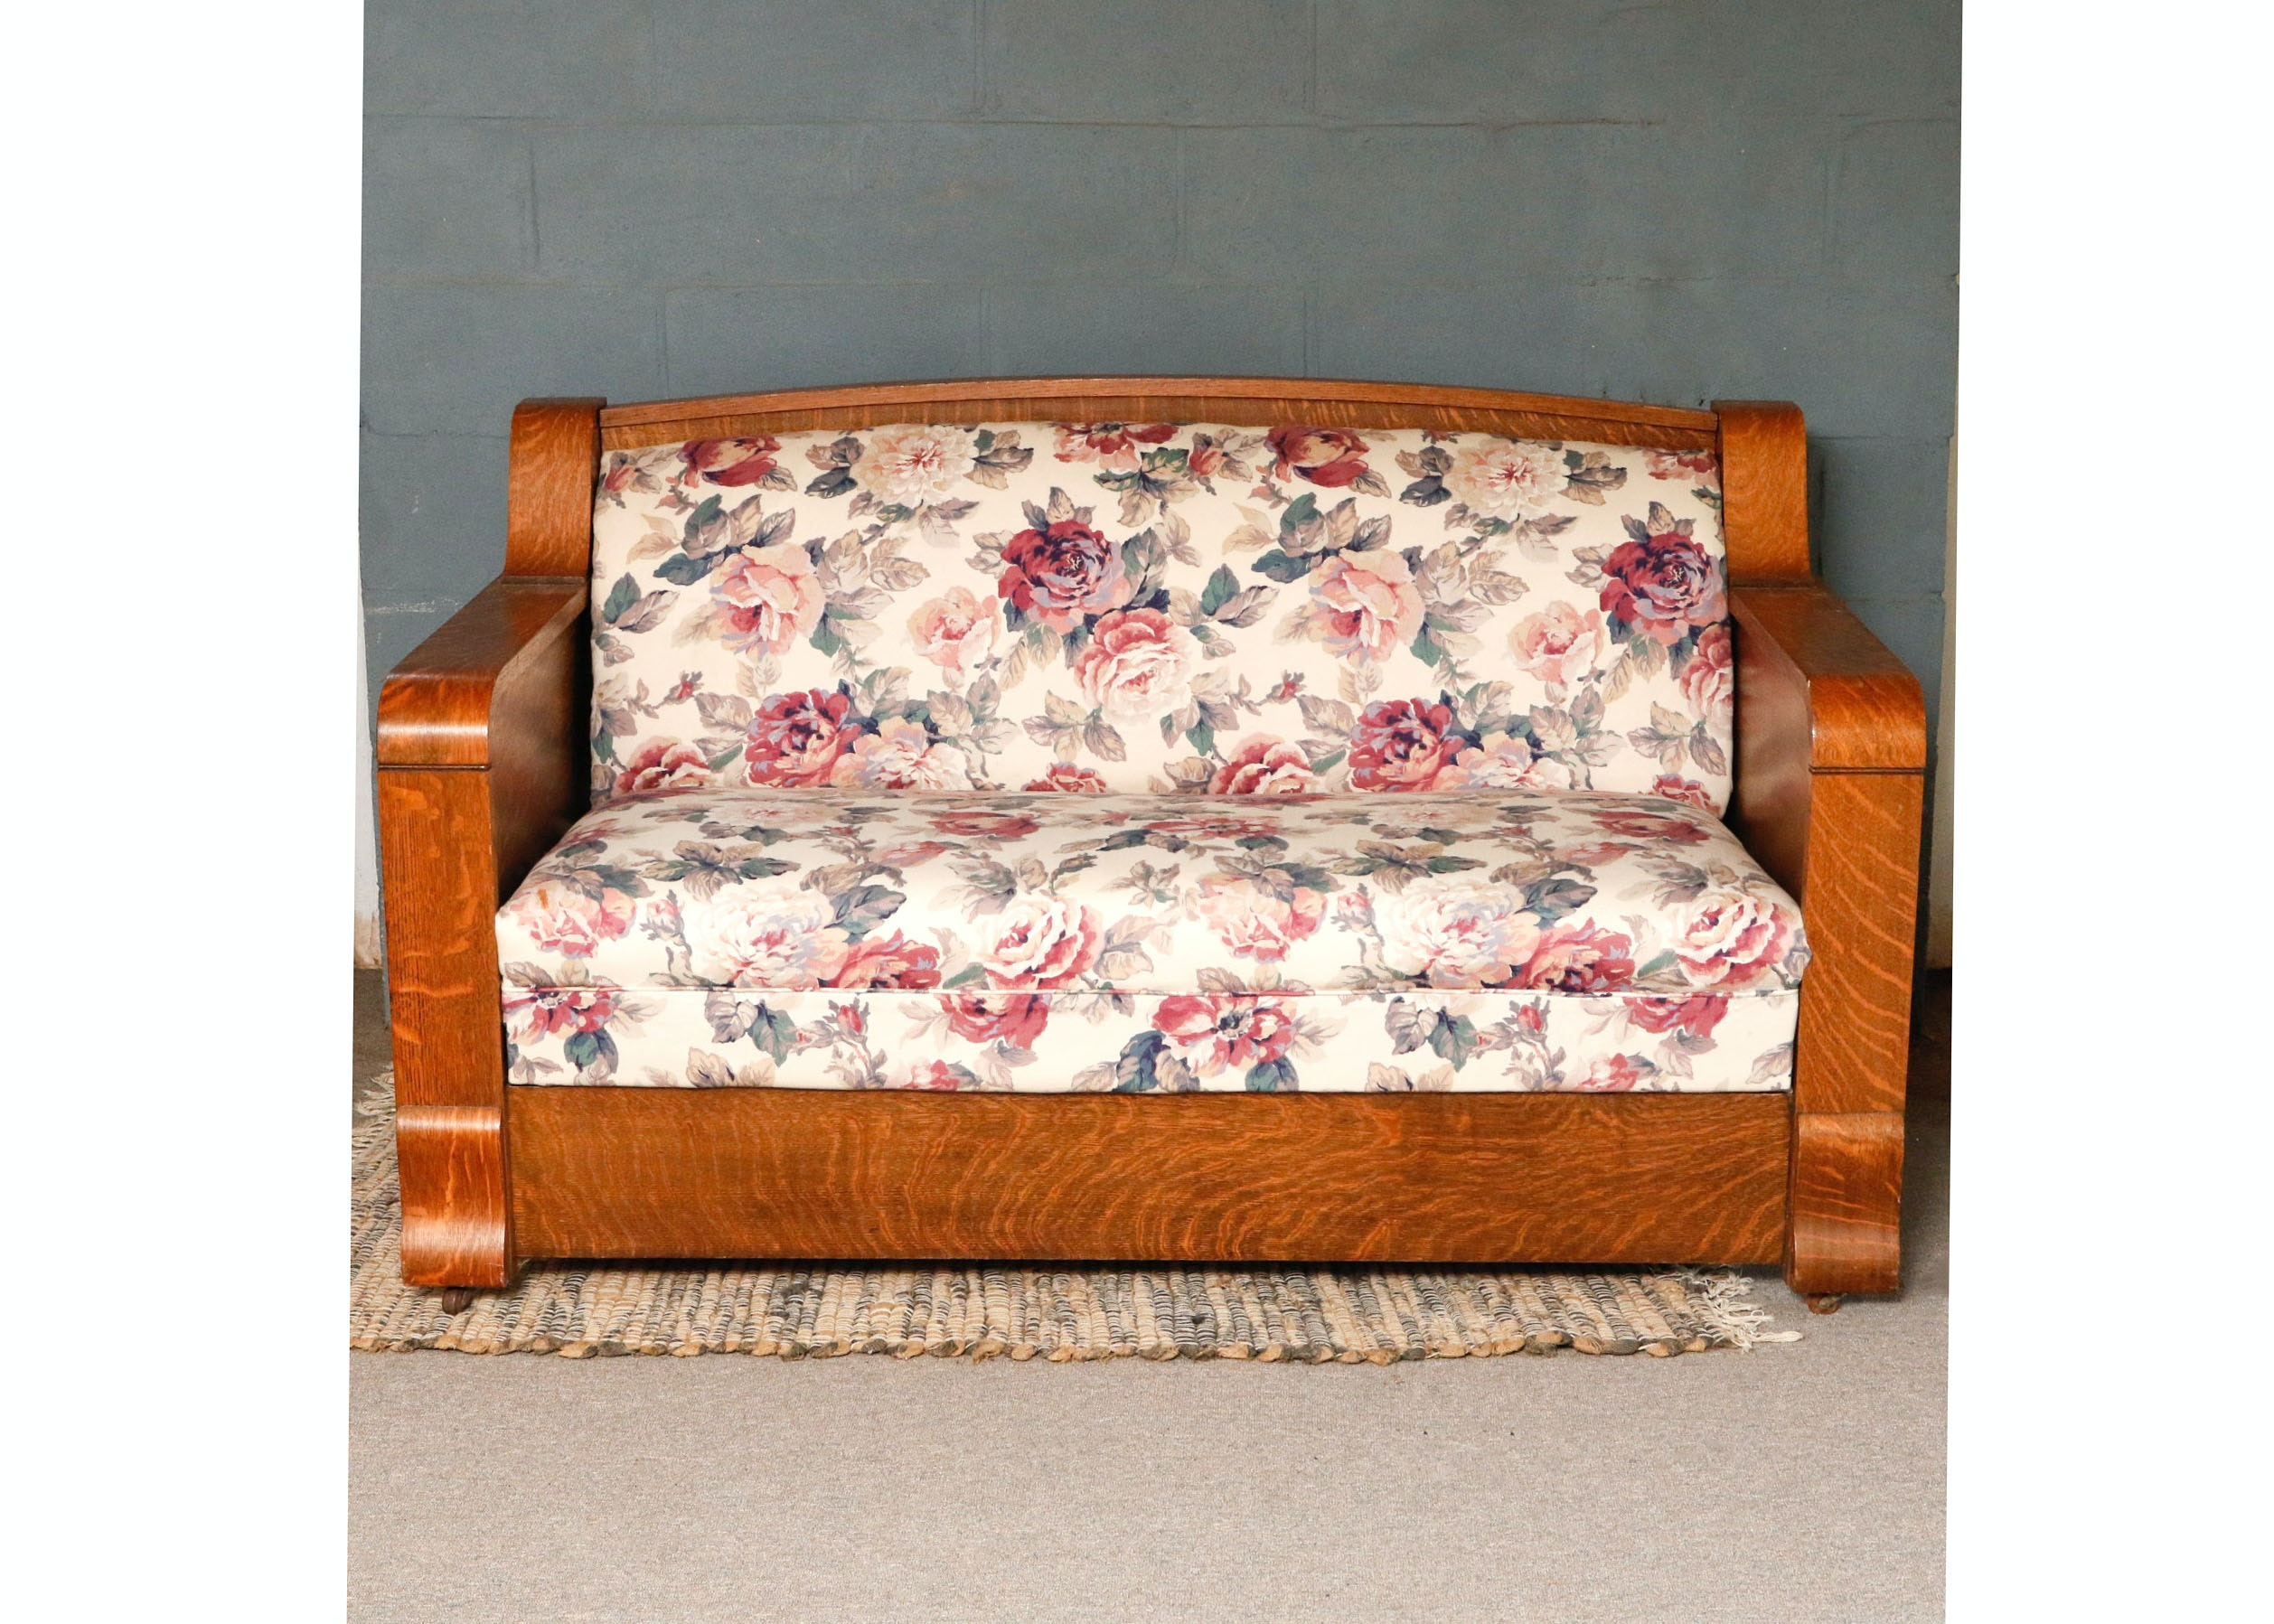 Kroehler Mfg. Co. Antique Quarter-Sawn Oak Sofa Bed